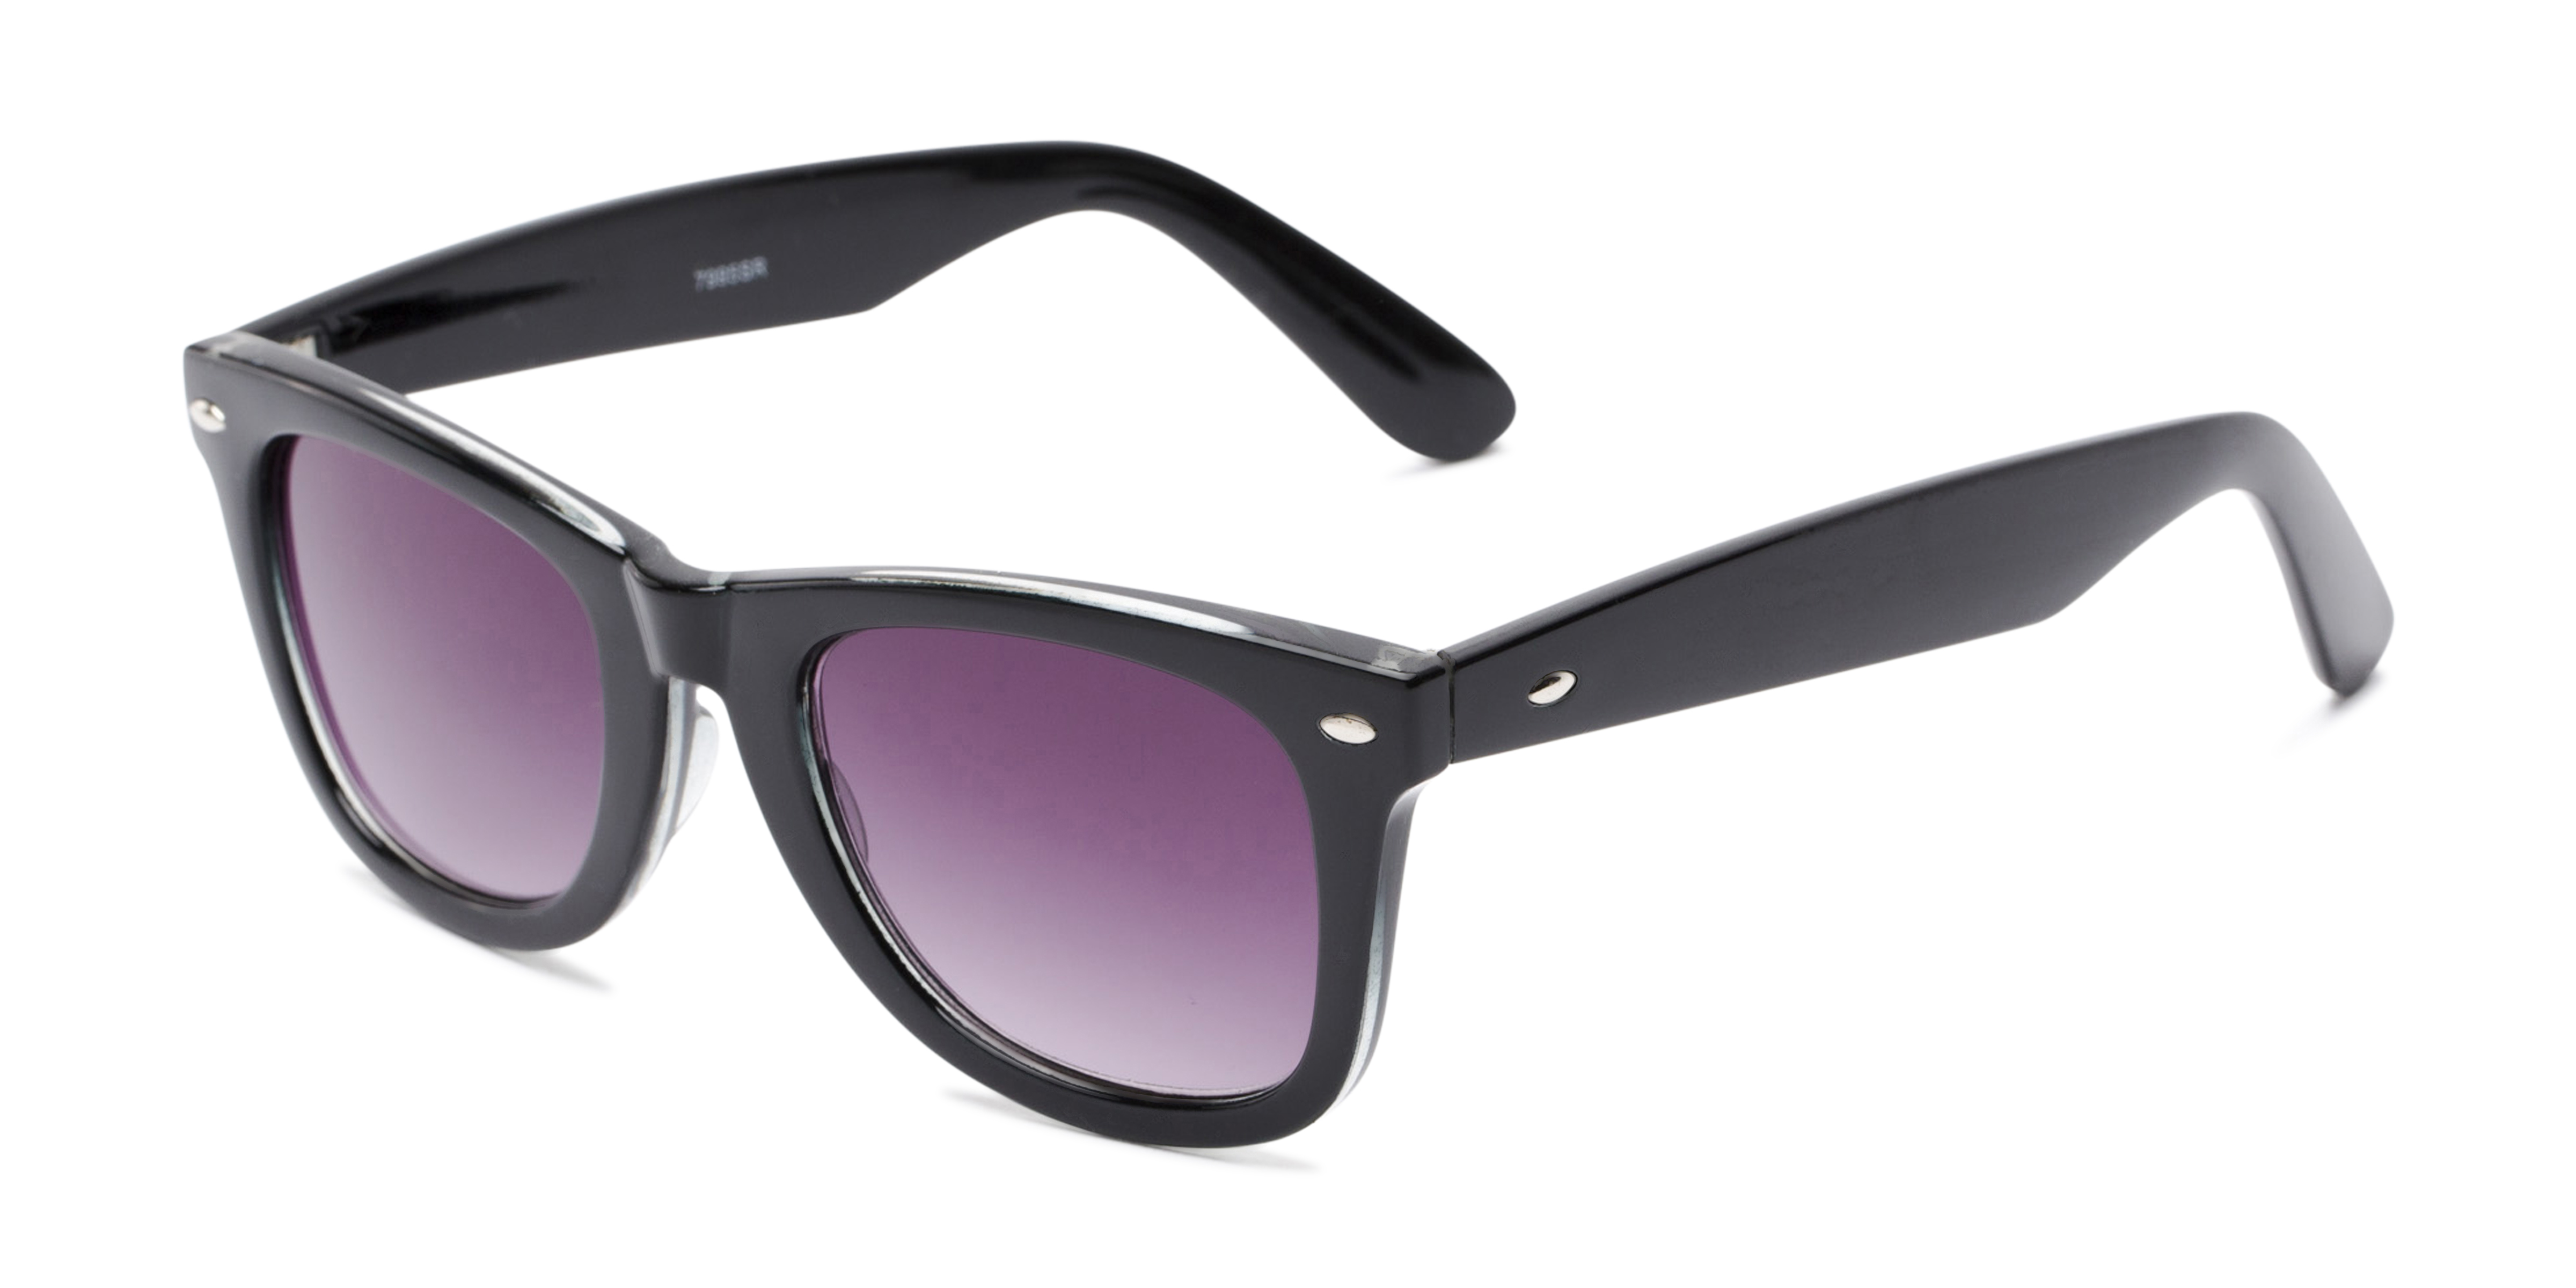 The Cancun Reading Sunglasses +1.75 Black with Smoke